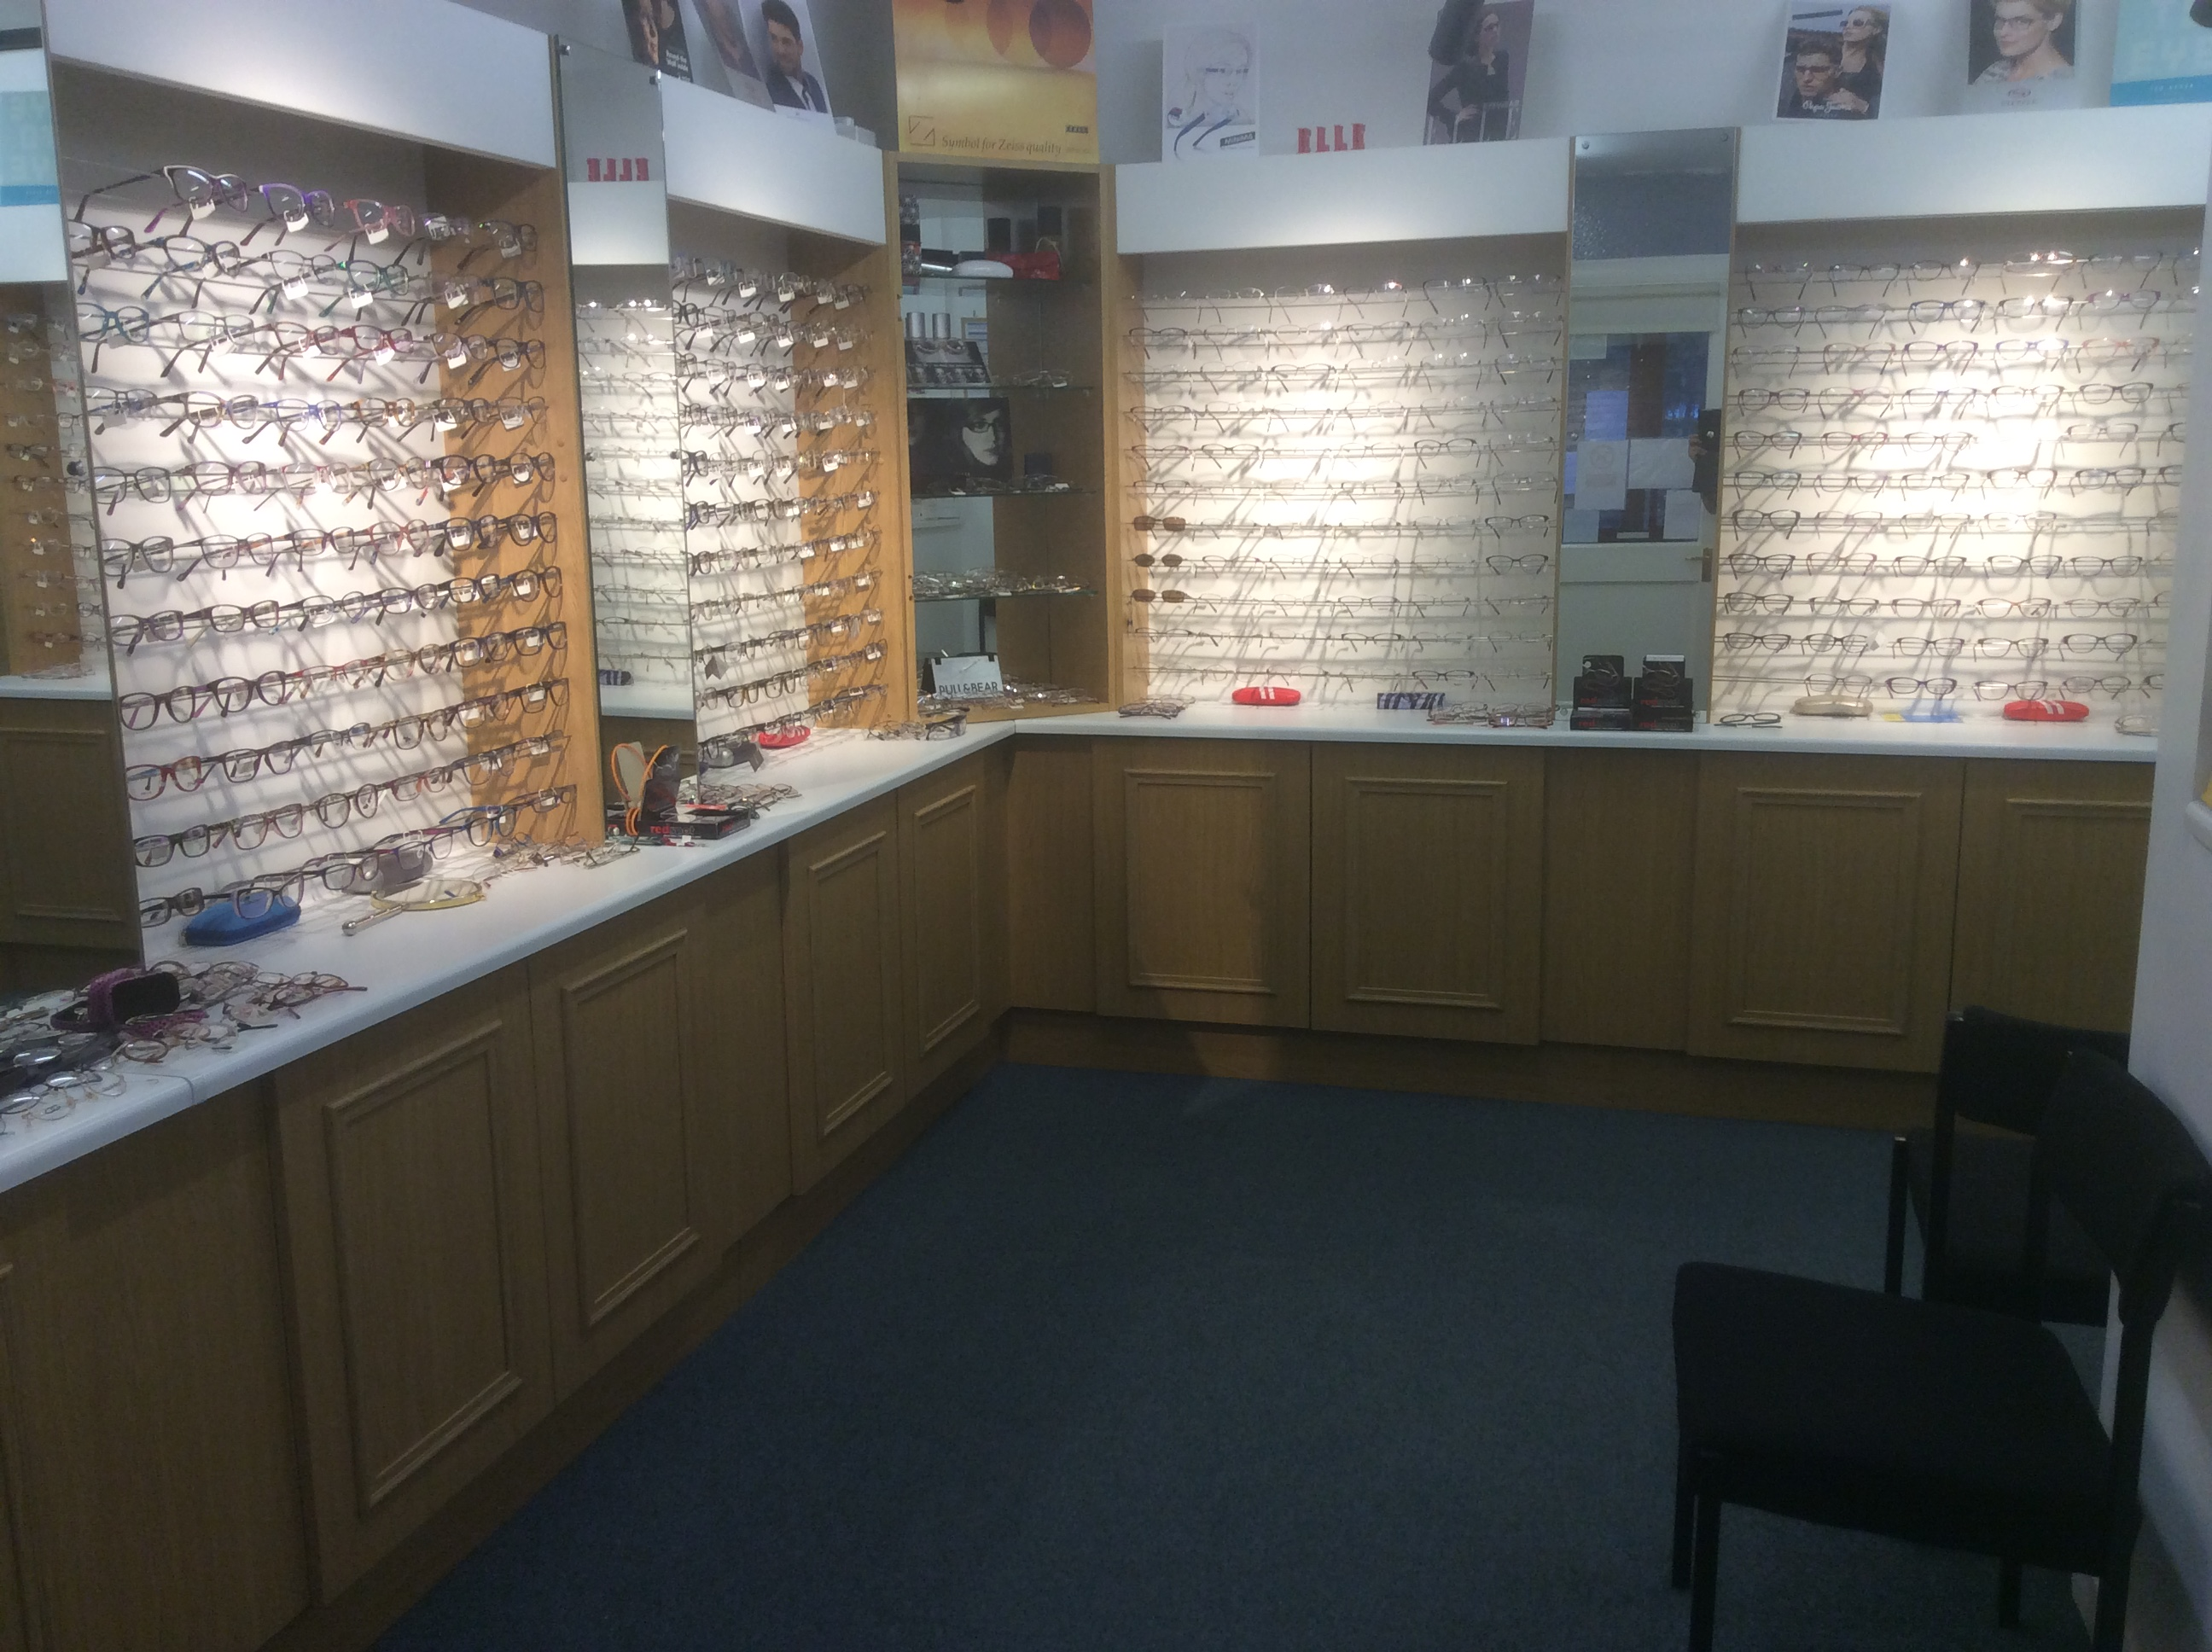 South Coast Opticians Front Room